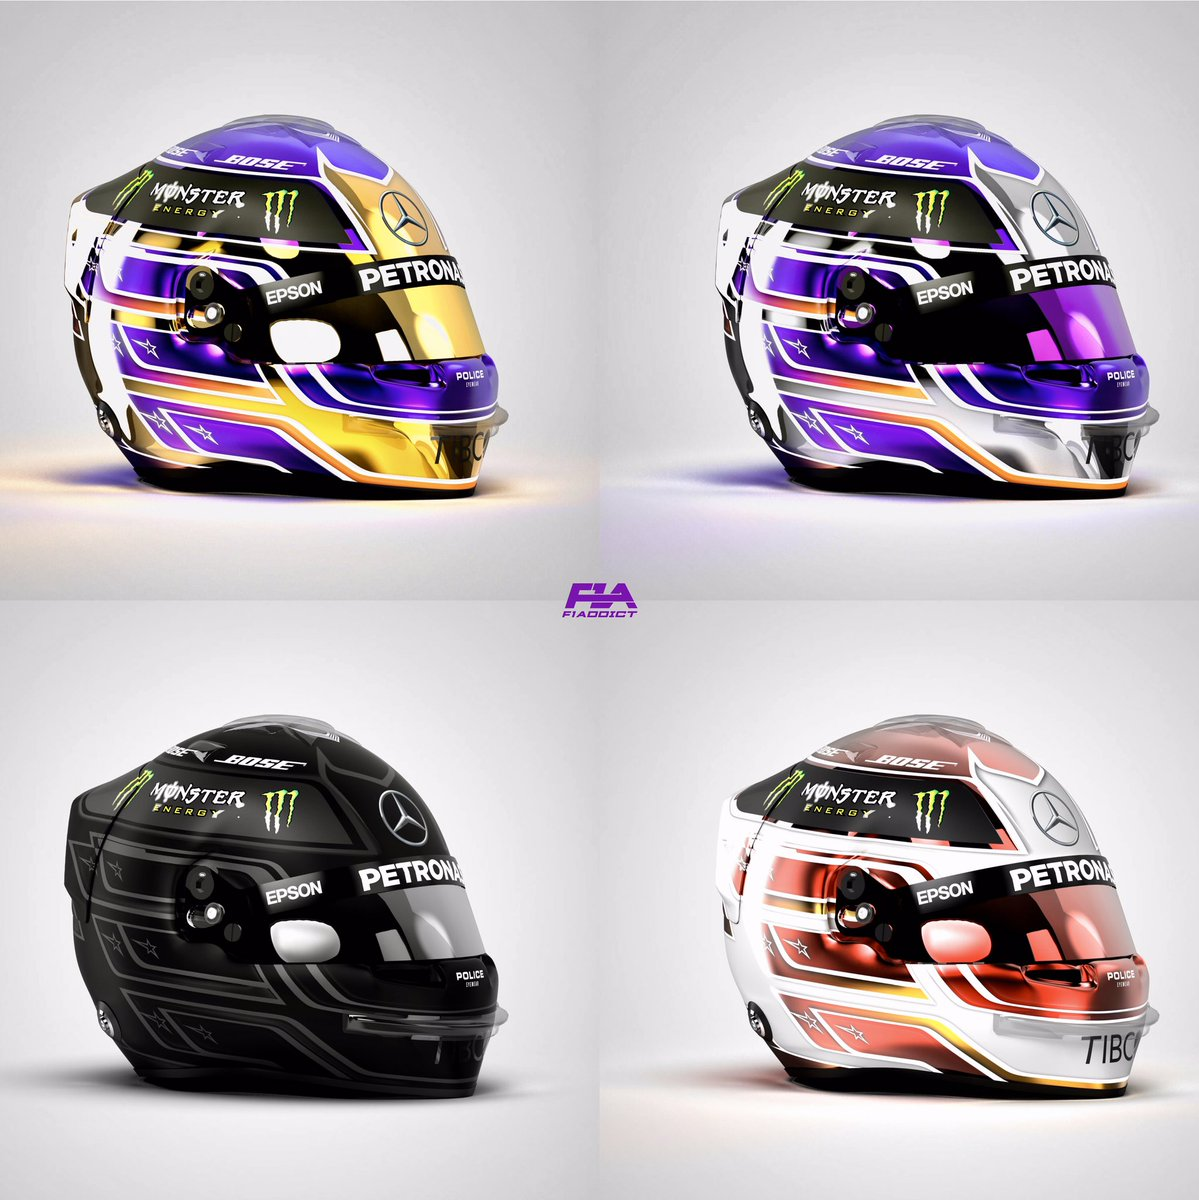 F1 Addict On Twitter Lewis Hamilton Helmet Design By Me Let Me Know What Do You Think About It F1 Lewishamilton